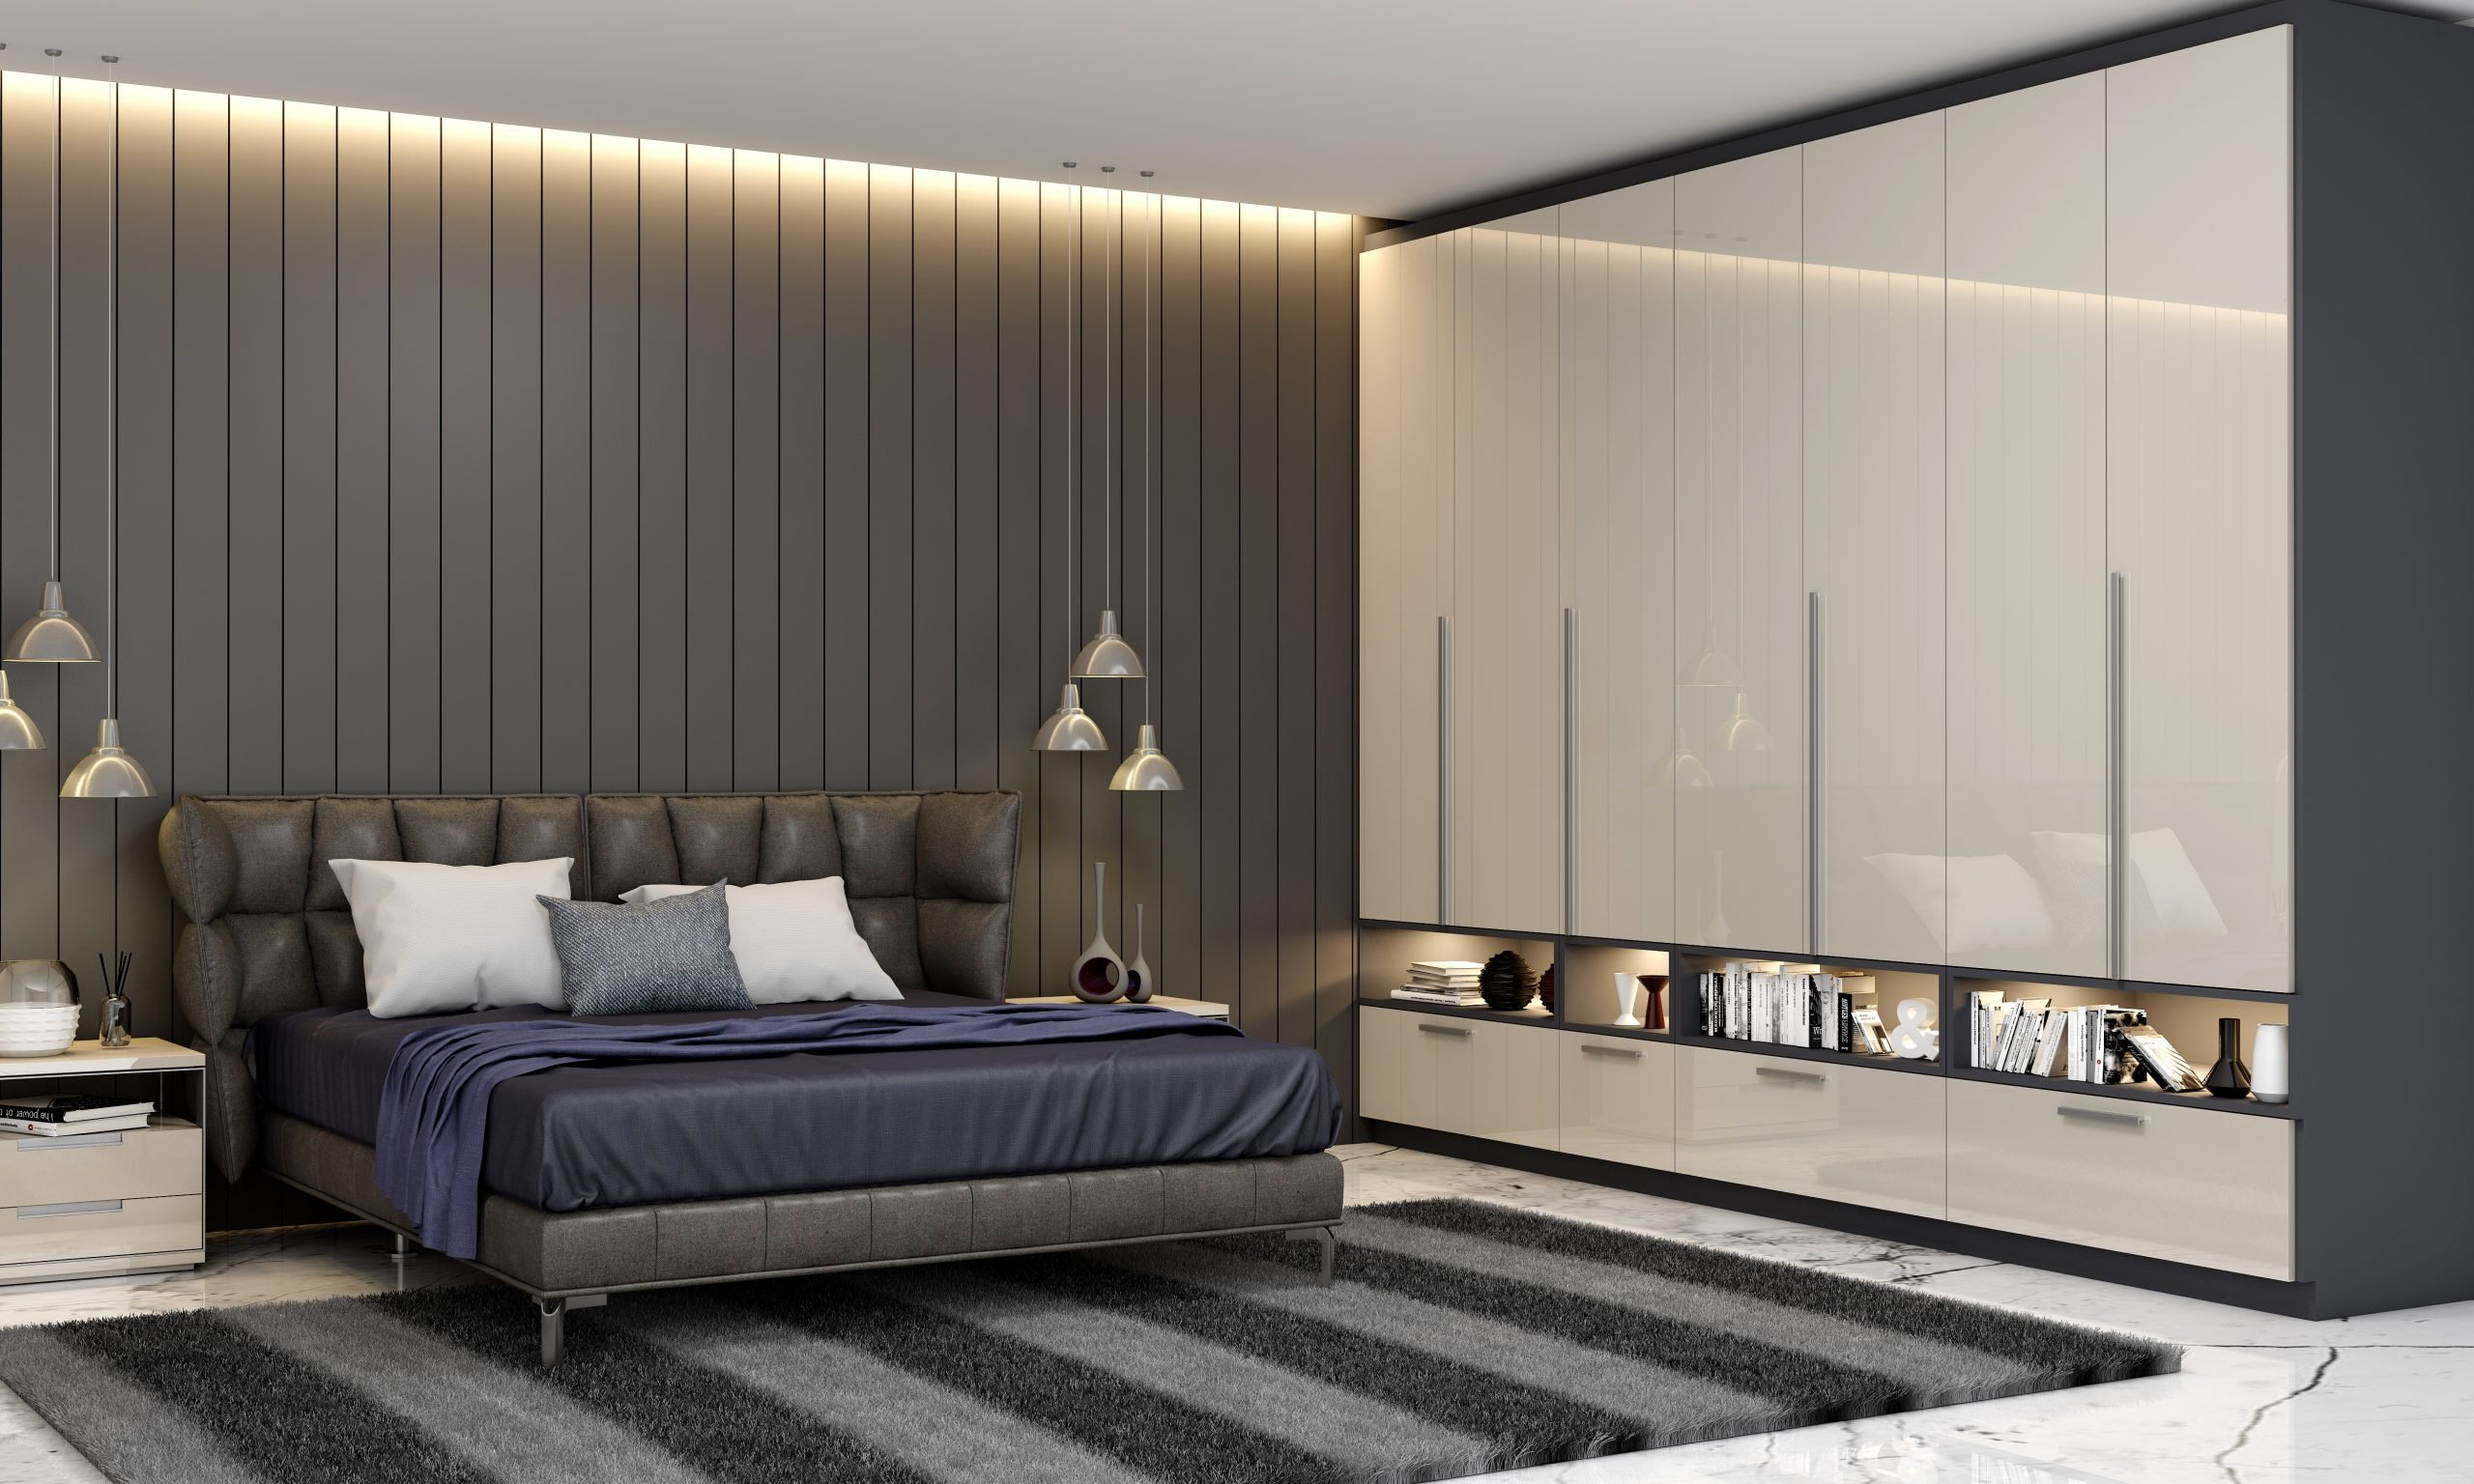 Contemporary Bedrooms Hinged Fitted Wardrobe With Open Shelves in Light Grey High Gloss and Indigo Blue Matt Finish